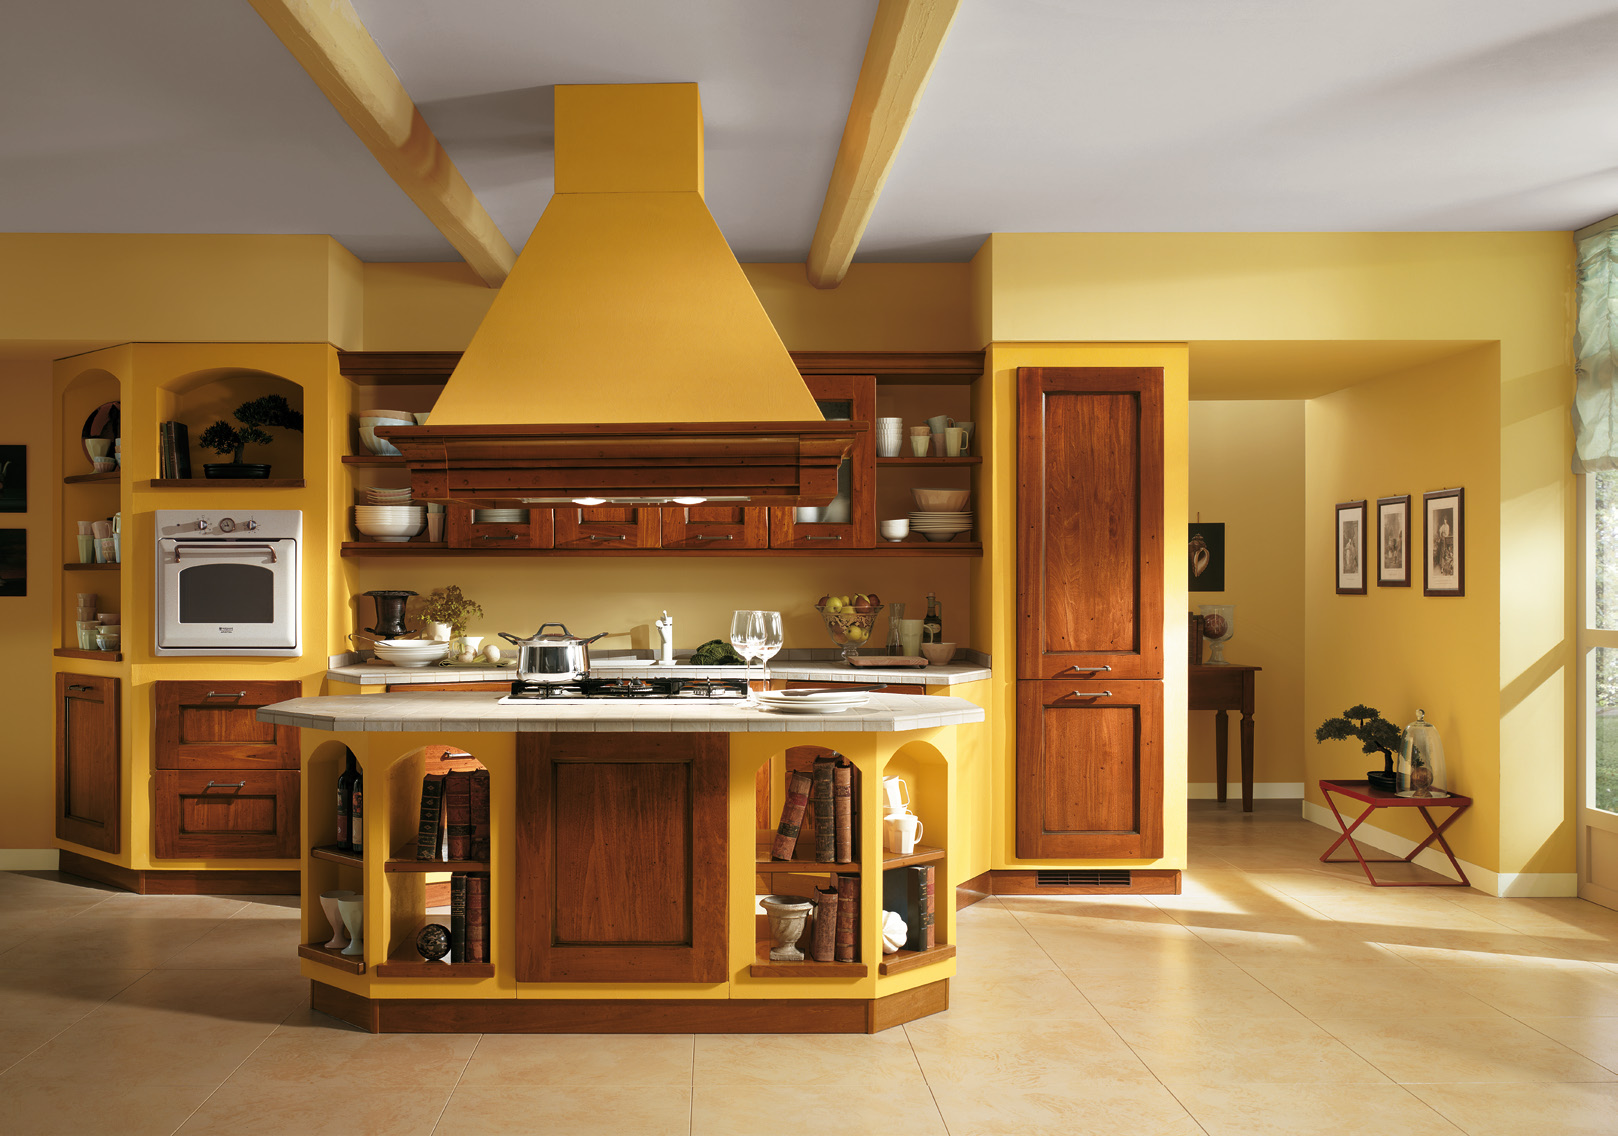 Italian kitchen design » Viahouse.